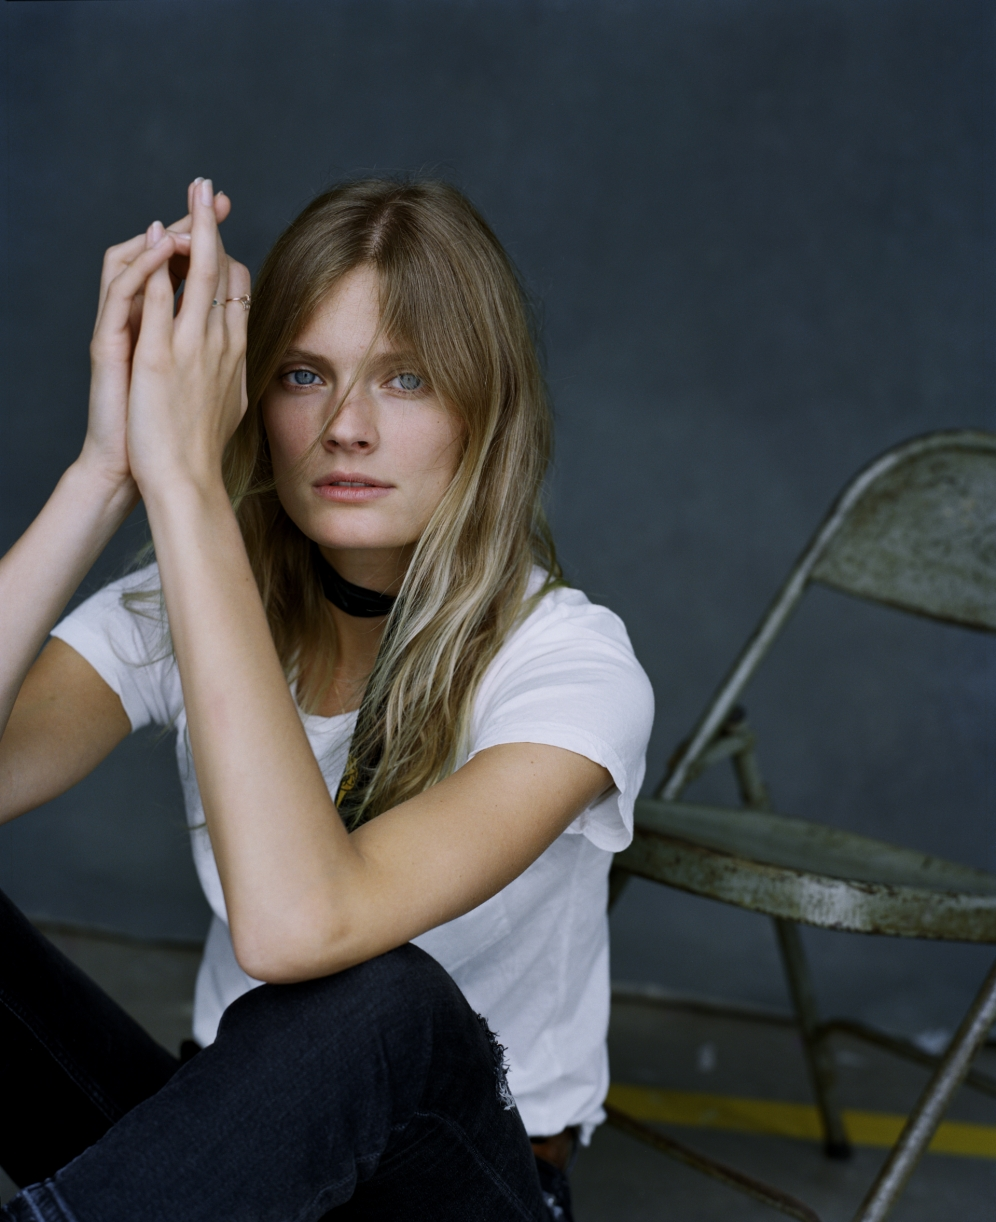 constance jablonski | chair project